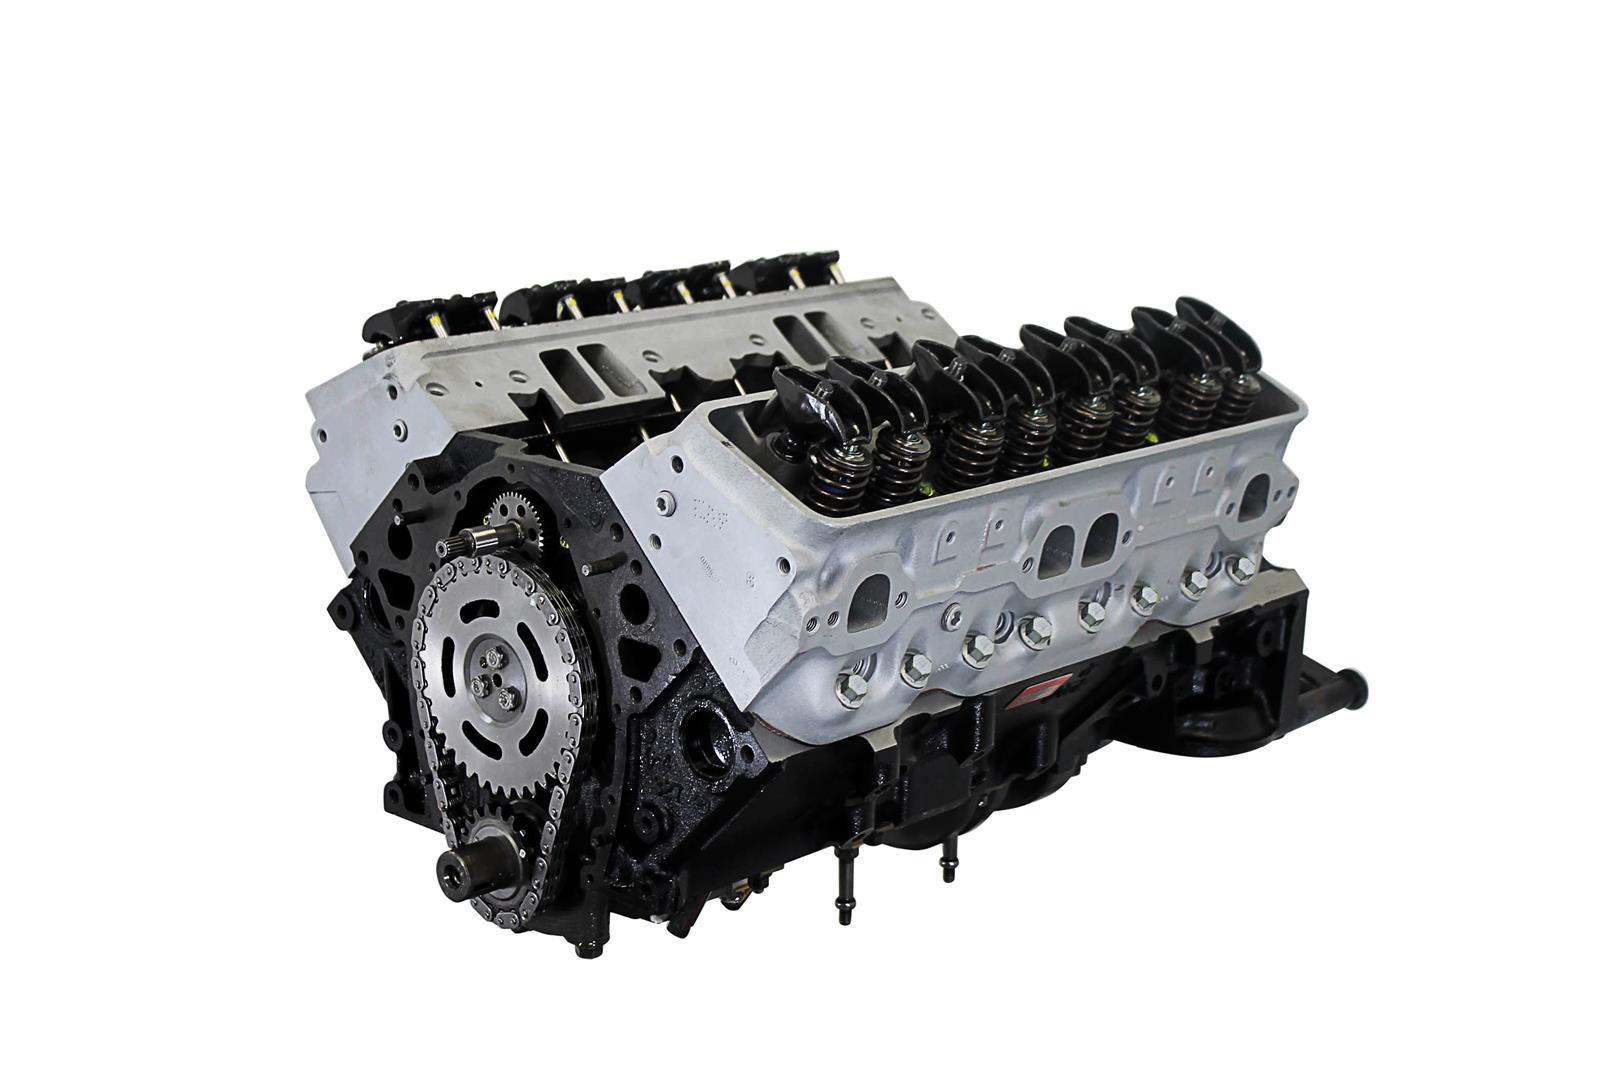 BluePrint Engines GM 355 C.I.D. 300 HP LT1 Replacement Long Block Crate  Engines BPG35027C - Free Shipping on Orders Over $49 at Summit Racing